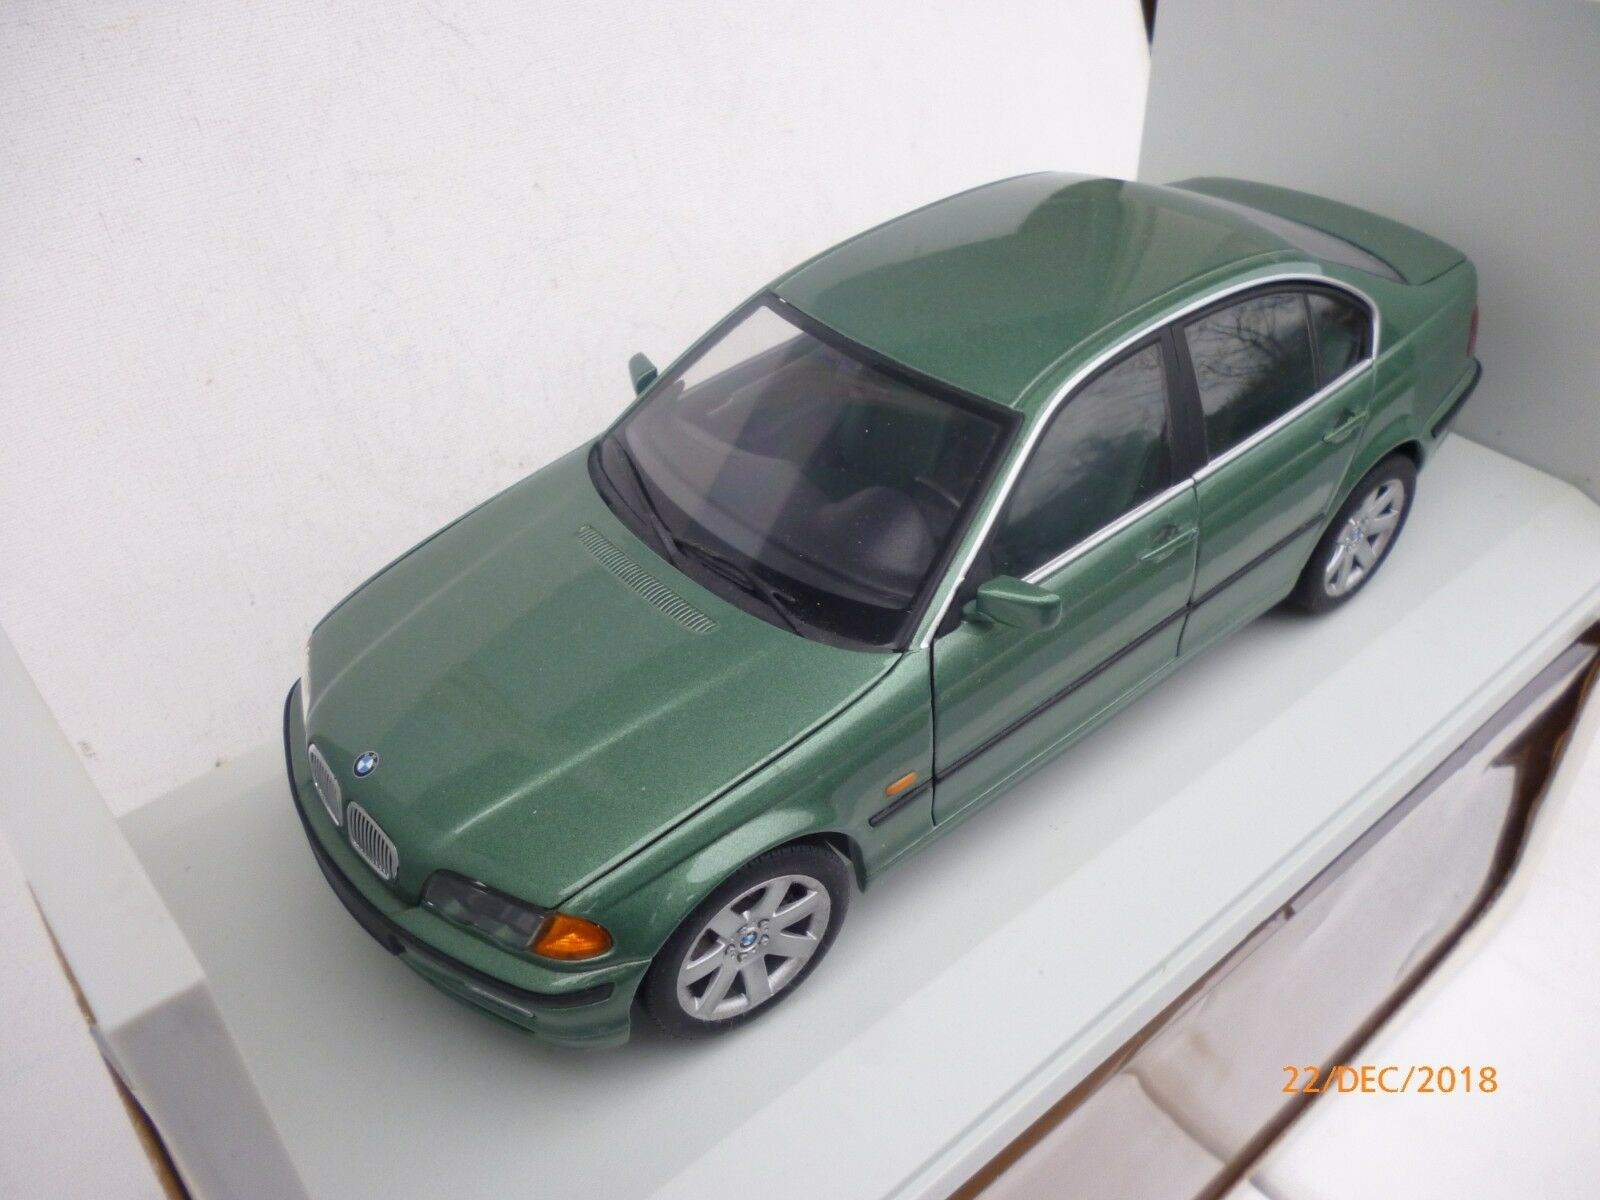 UT MODELS 328 i  BMW E-46 3 SERIES  SALOON  V=6 POWER  verde METALLIC NM BOX